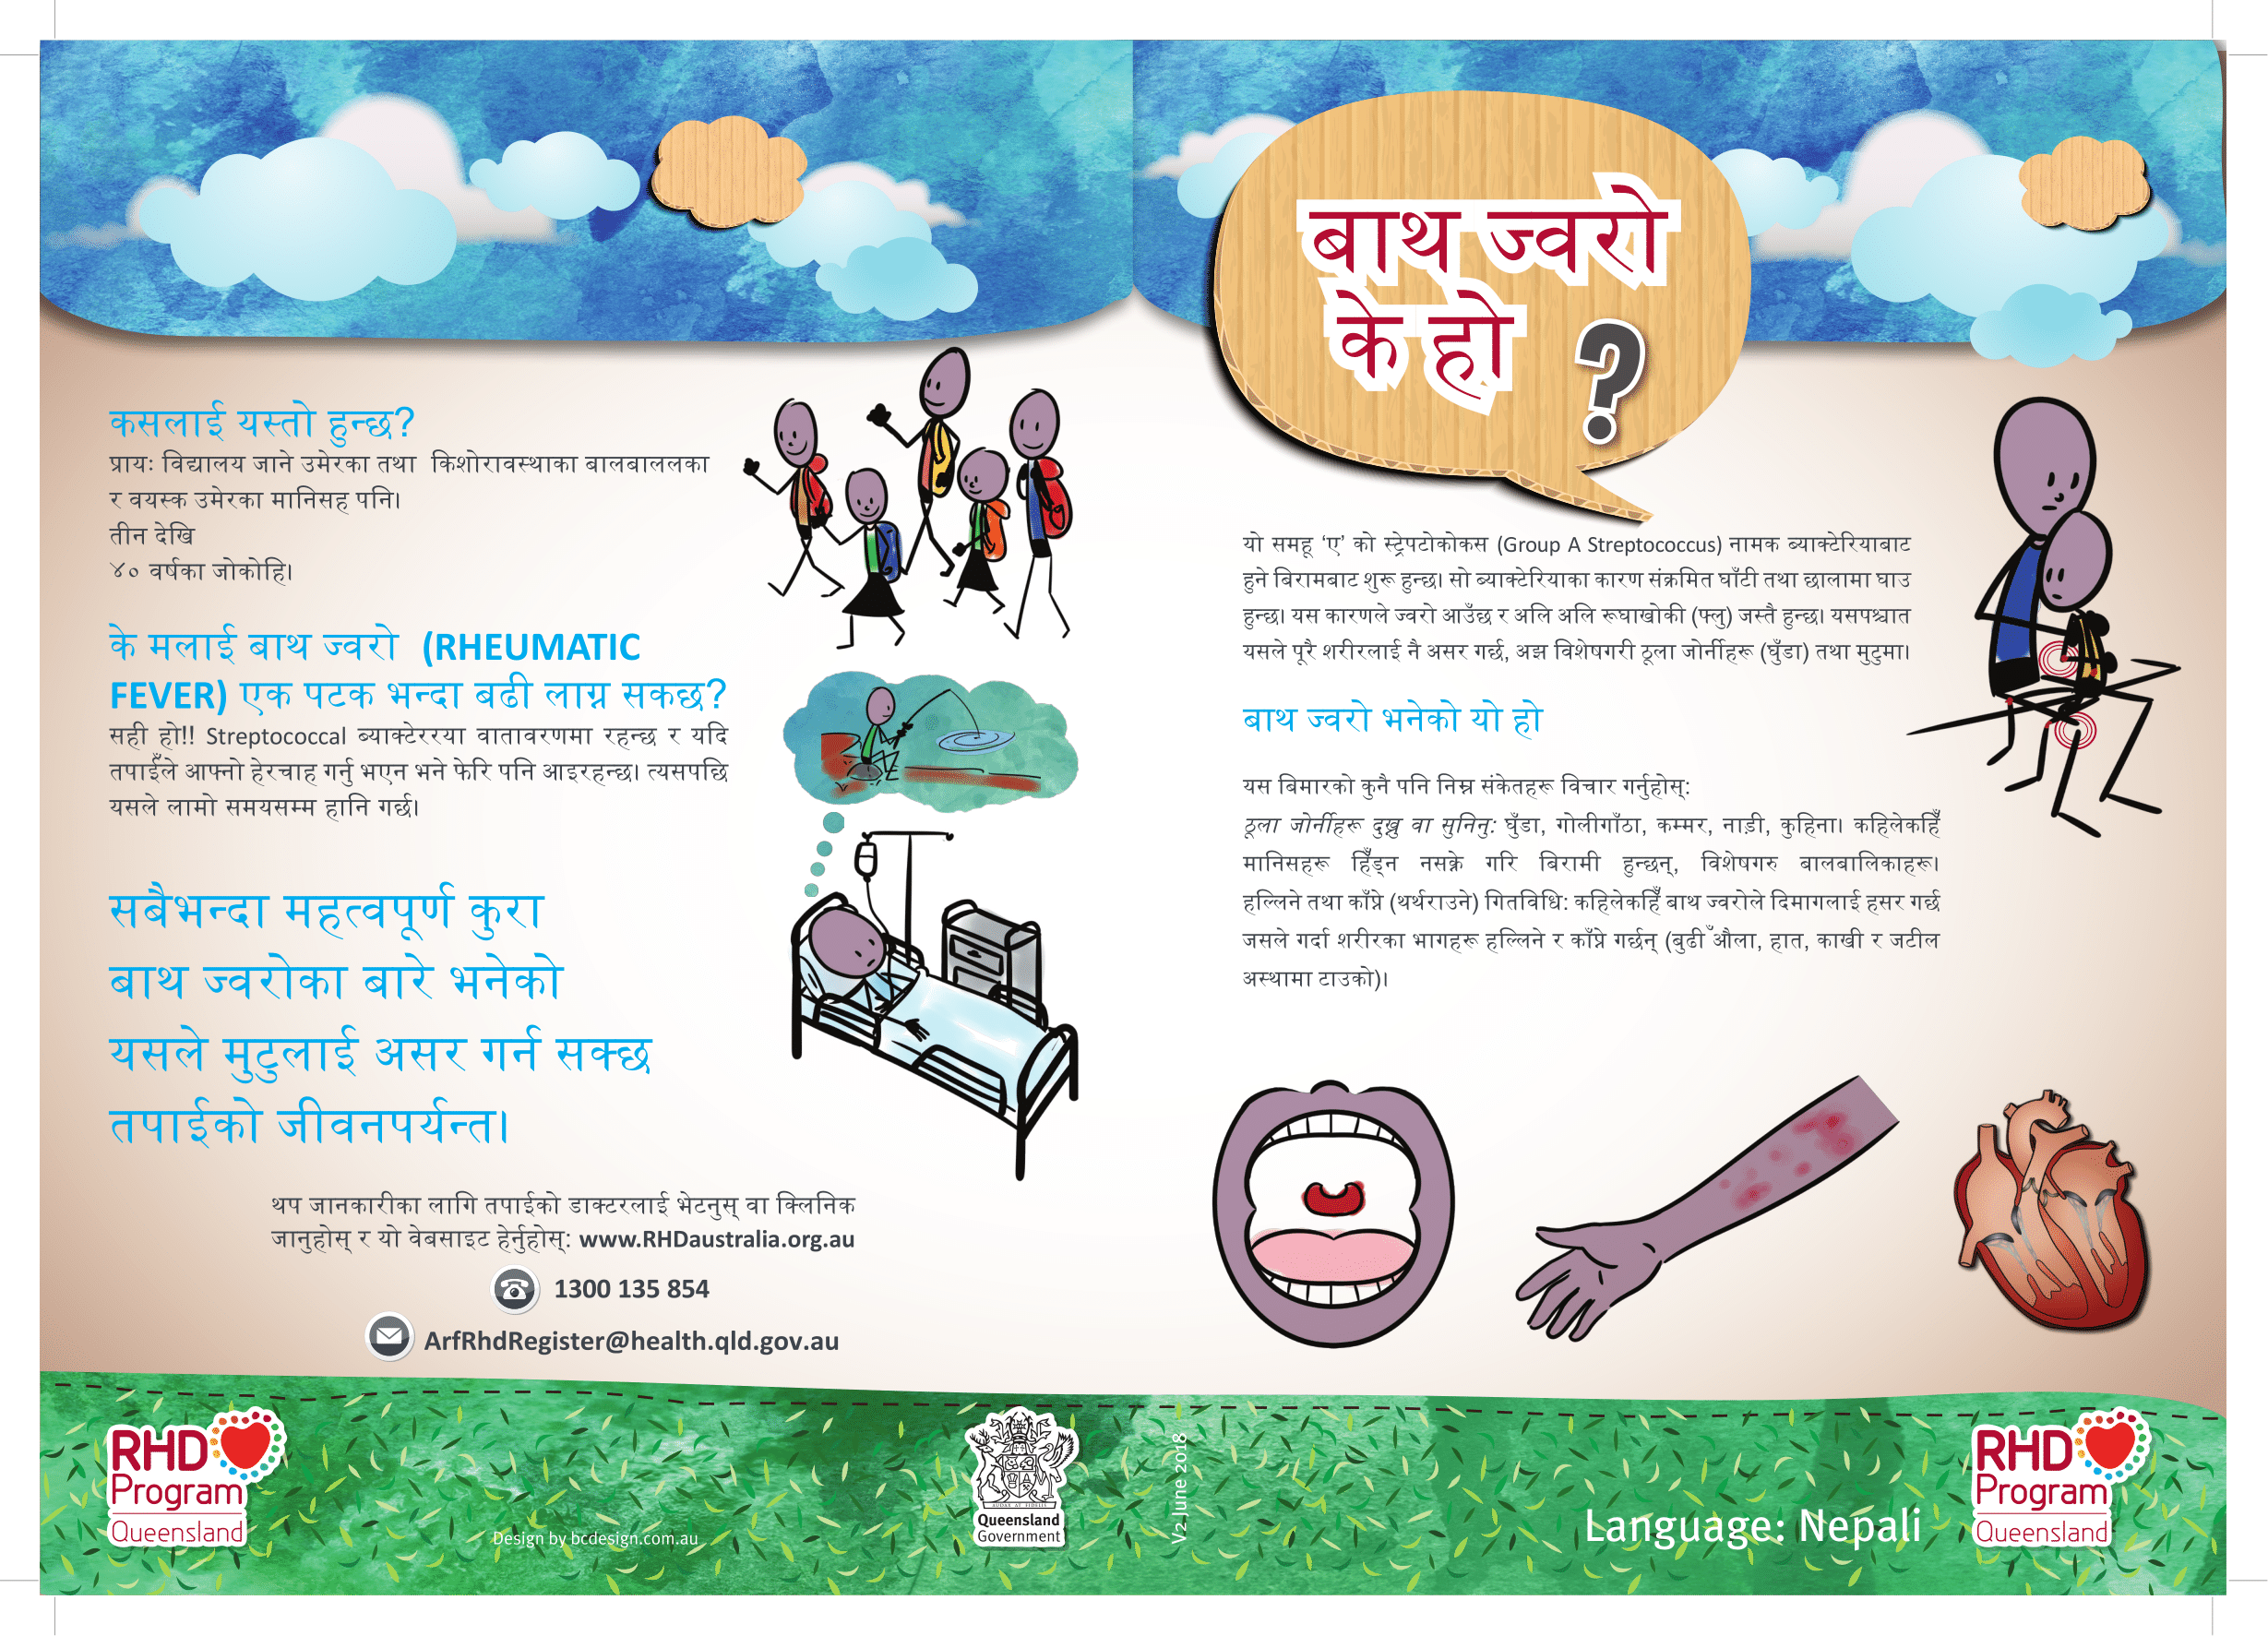 This poster presented in Nepali, includes information about the causes, signs, symptoms and prevention of acute rheumatic fever. (A4 size)